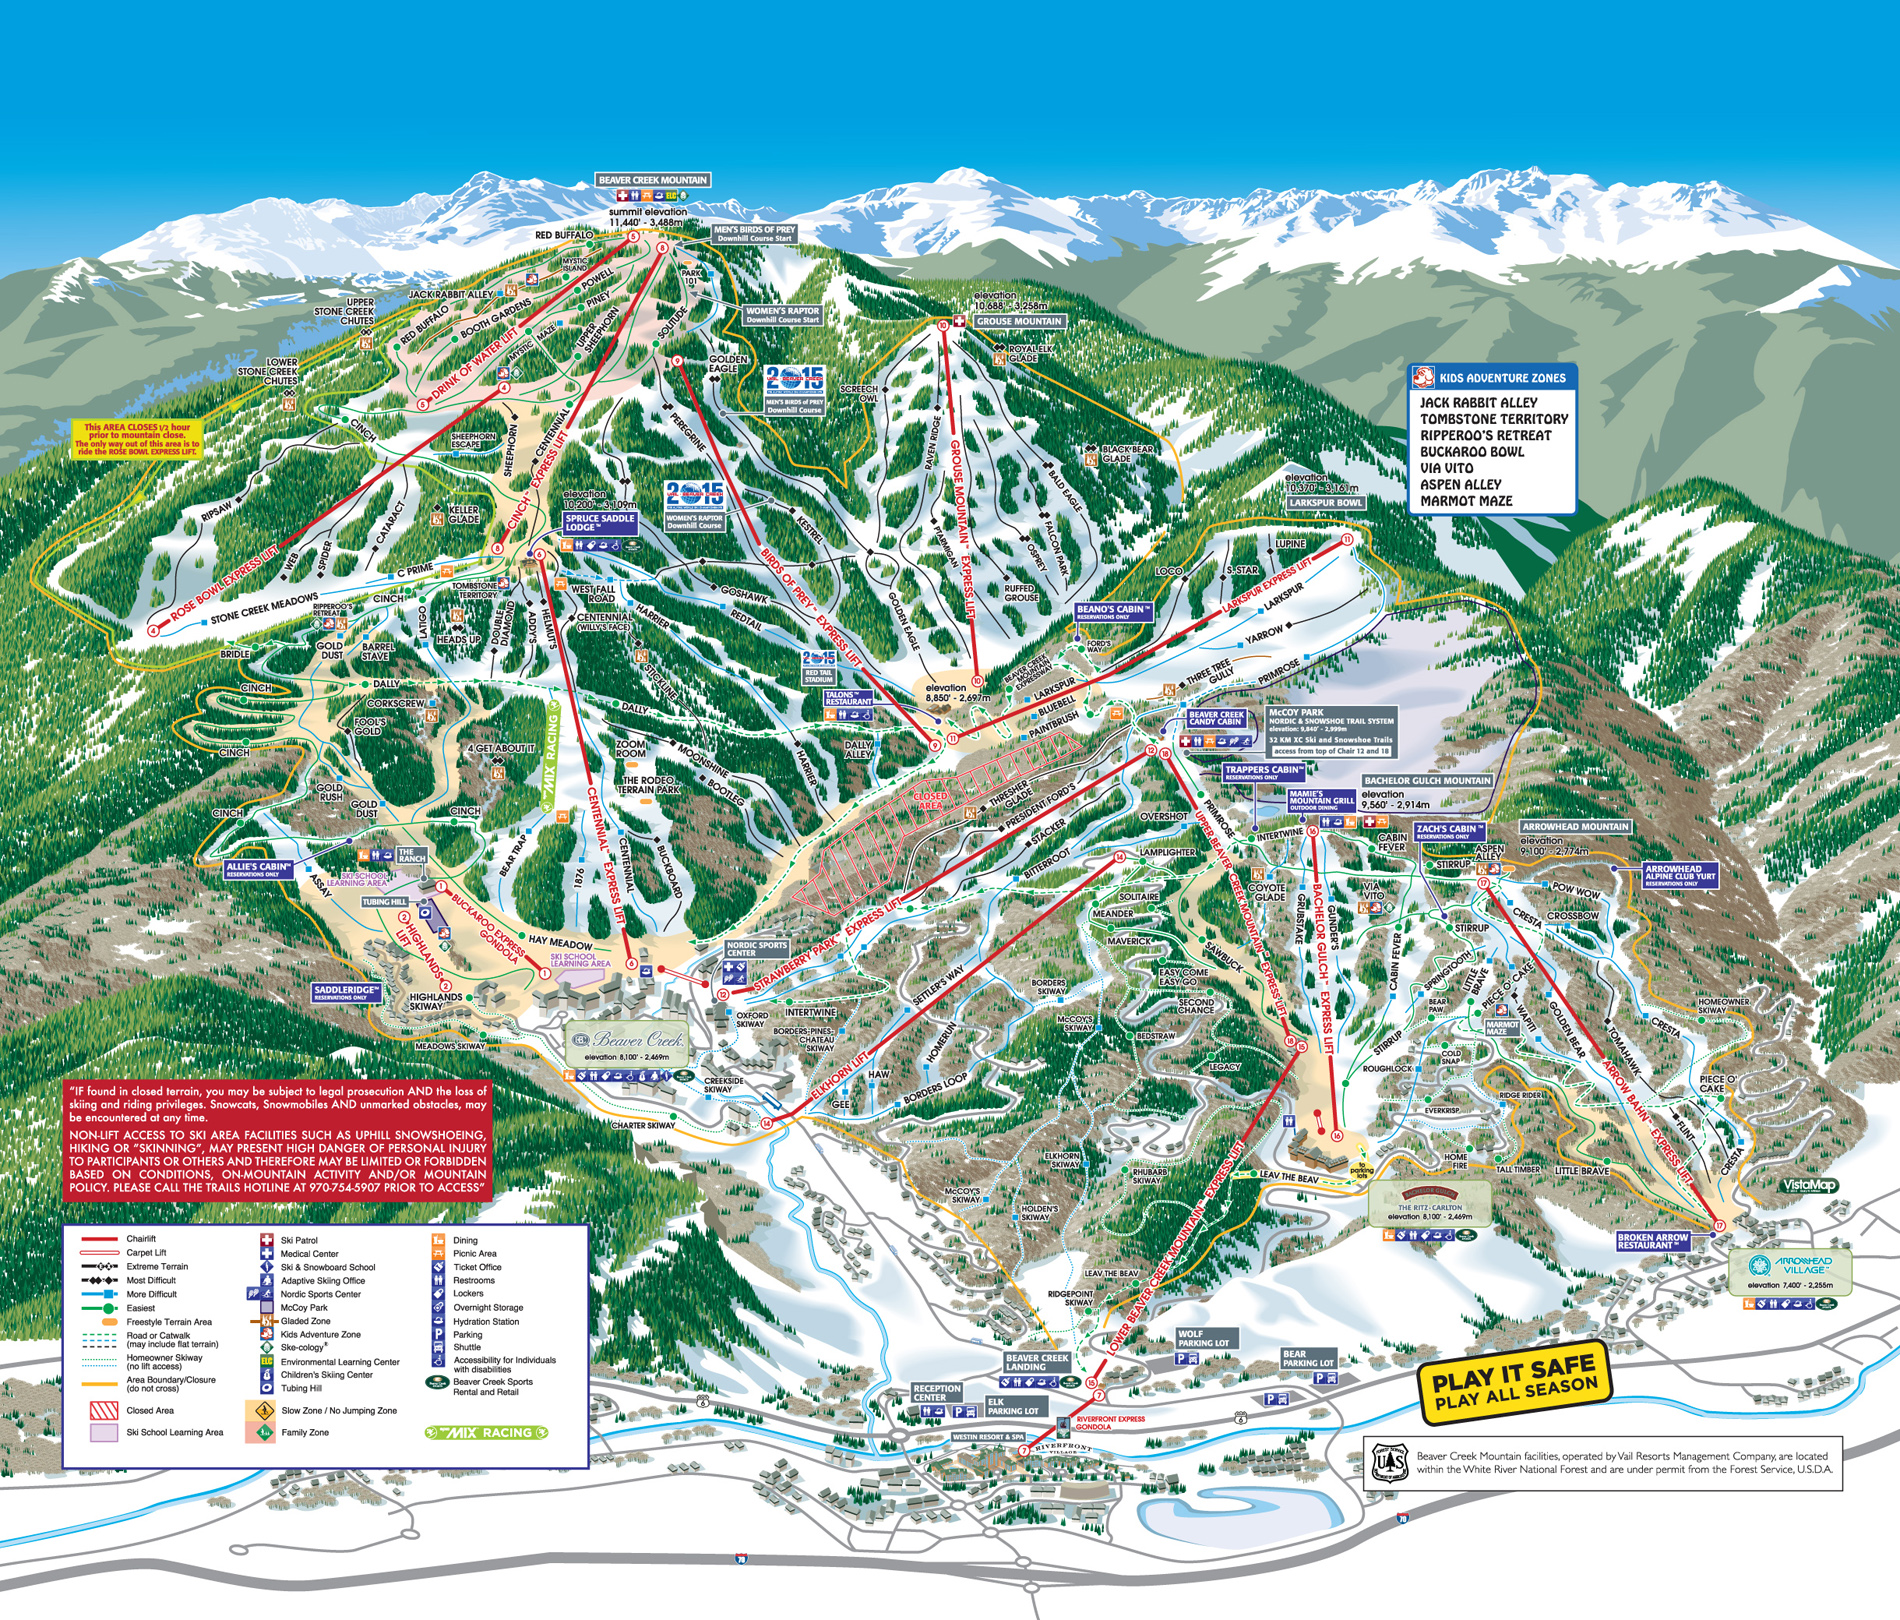 Beaver Creek Skiing  Snowboarding Resort Guide Evo - Map of colorado ski resorts and cities